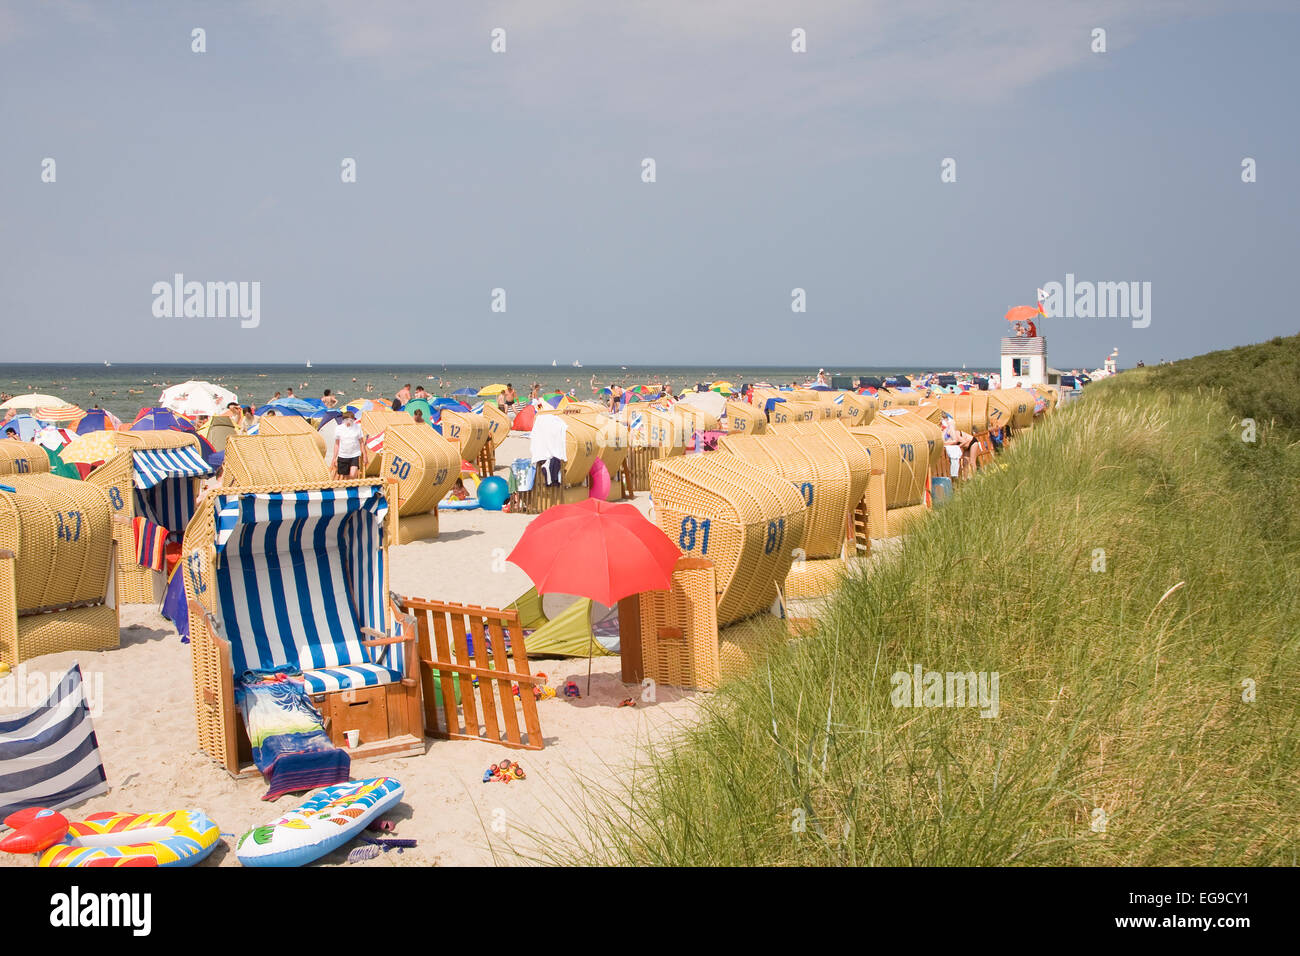 Timmendorf beach, island of Poel, Mecklenburg-Western Pomerania, Germany, Europe Stock Photo